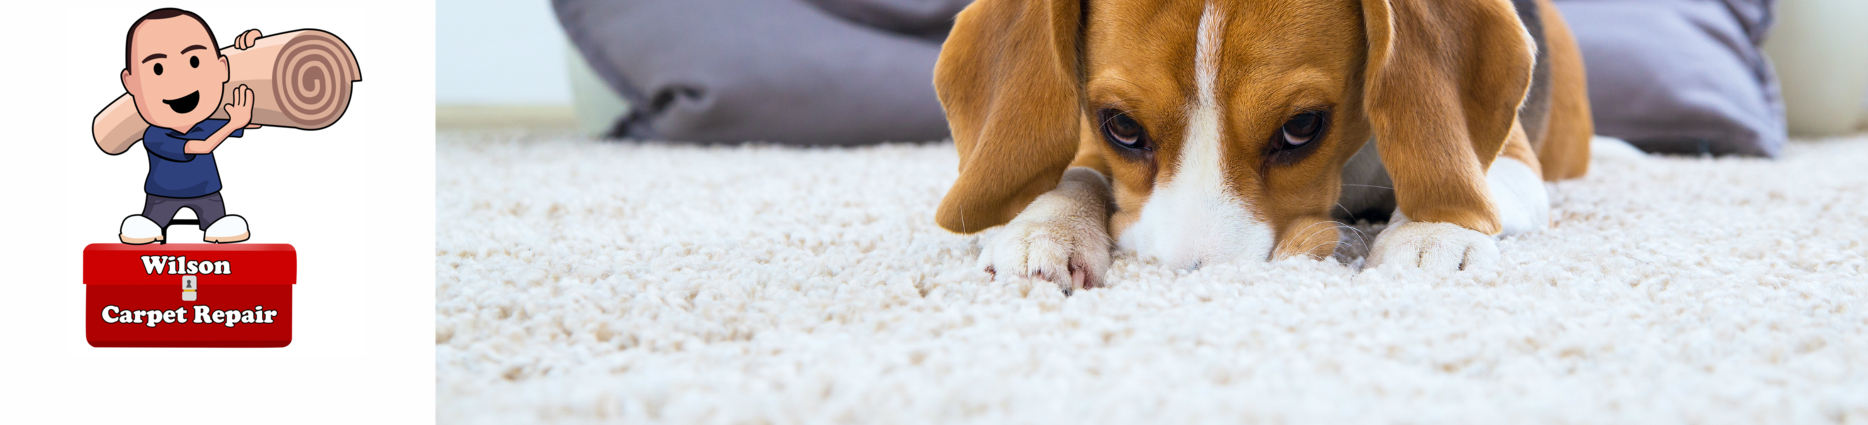 Dog on new carpet installation by Wilson Carpet repair